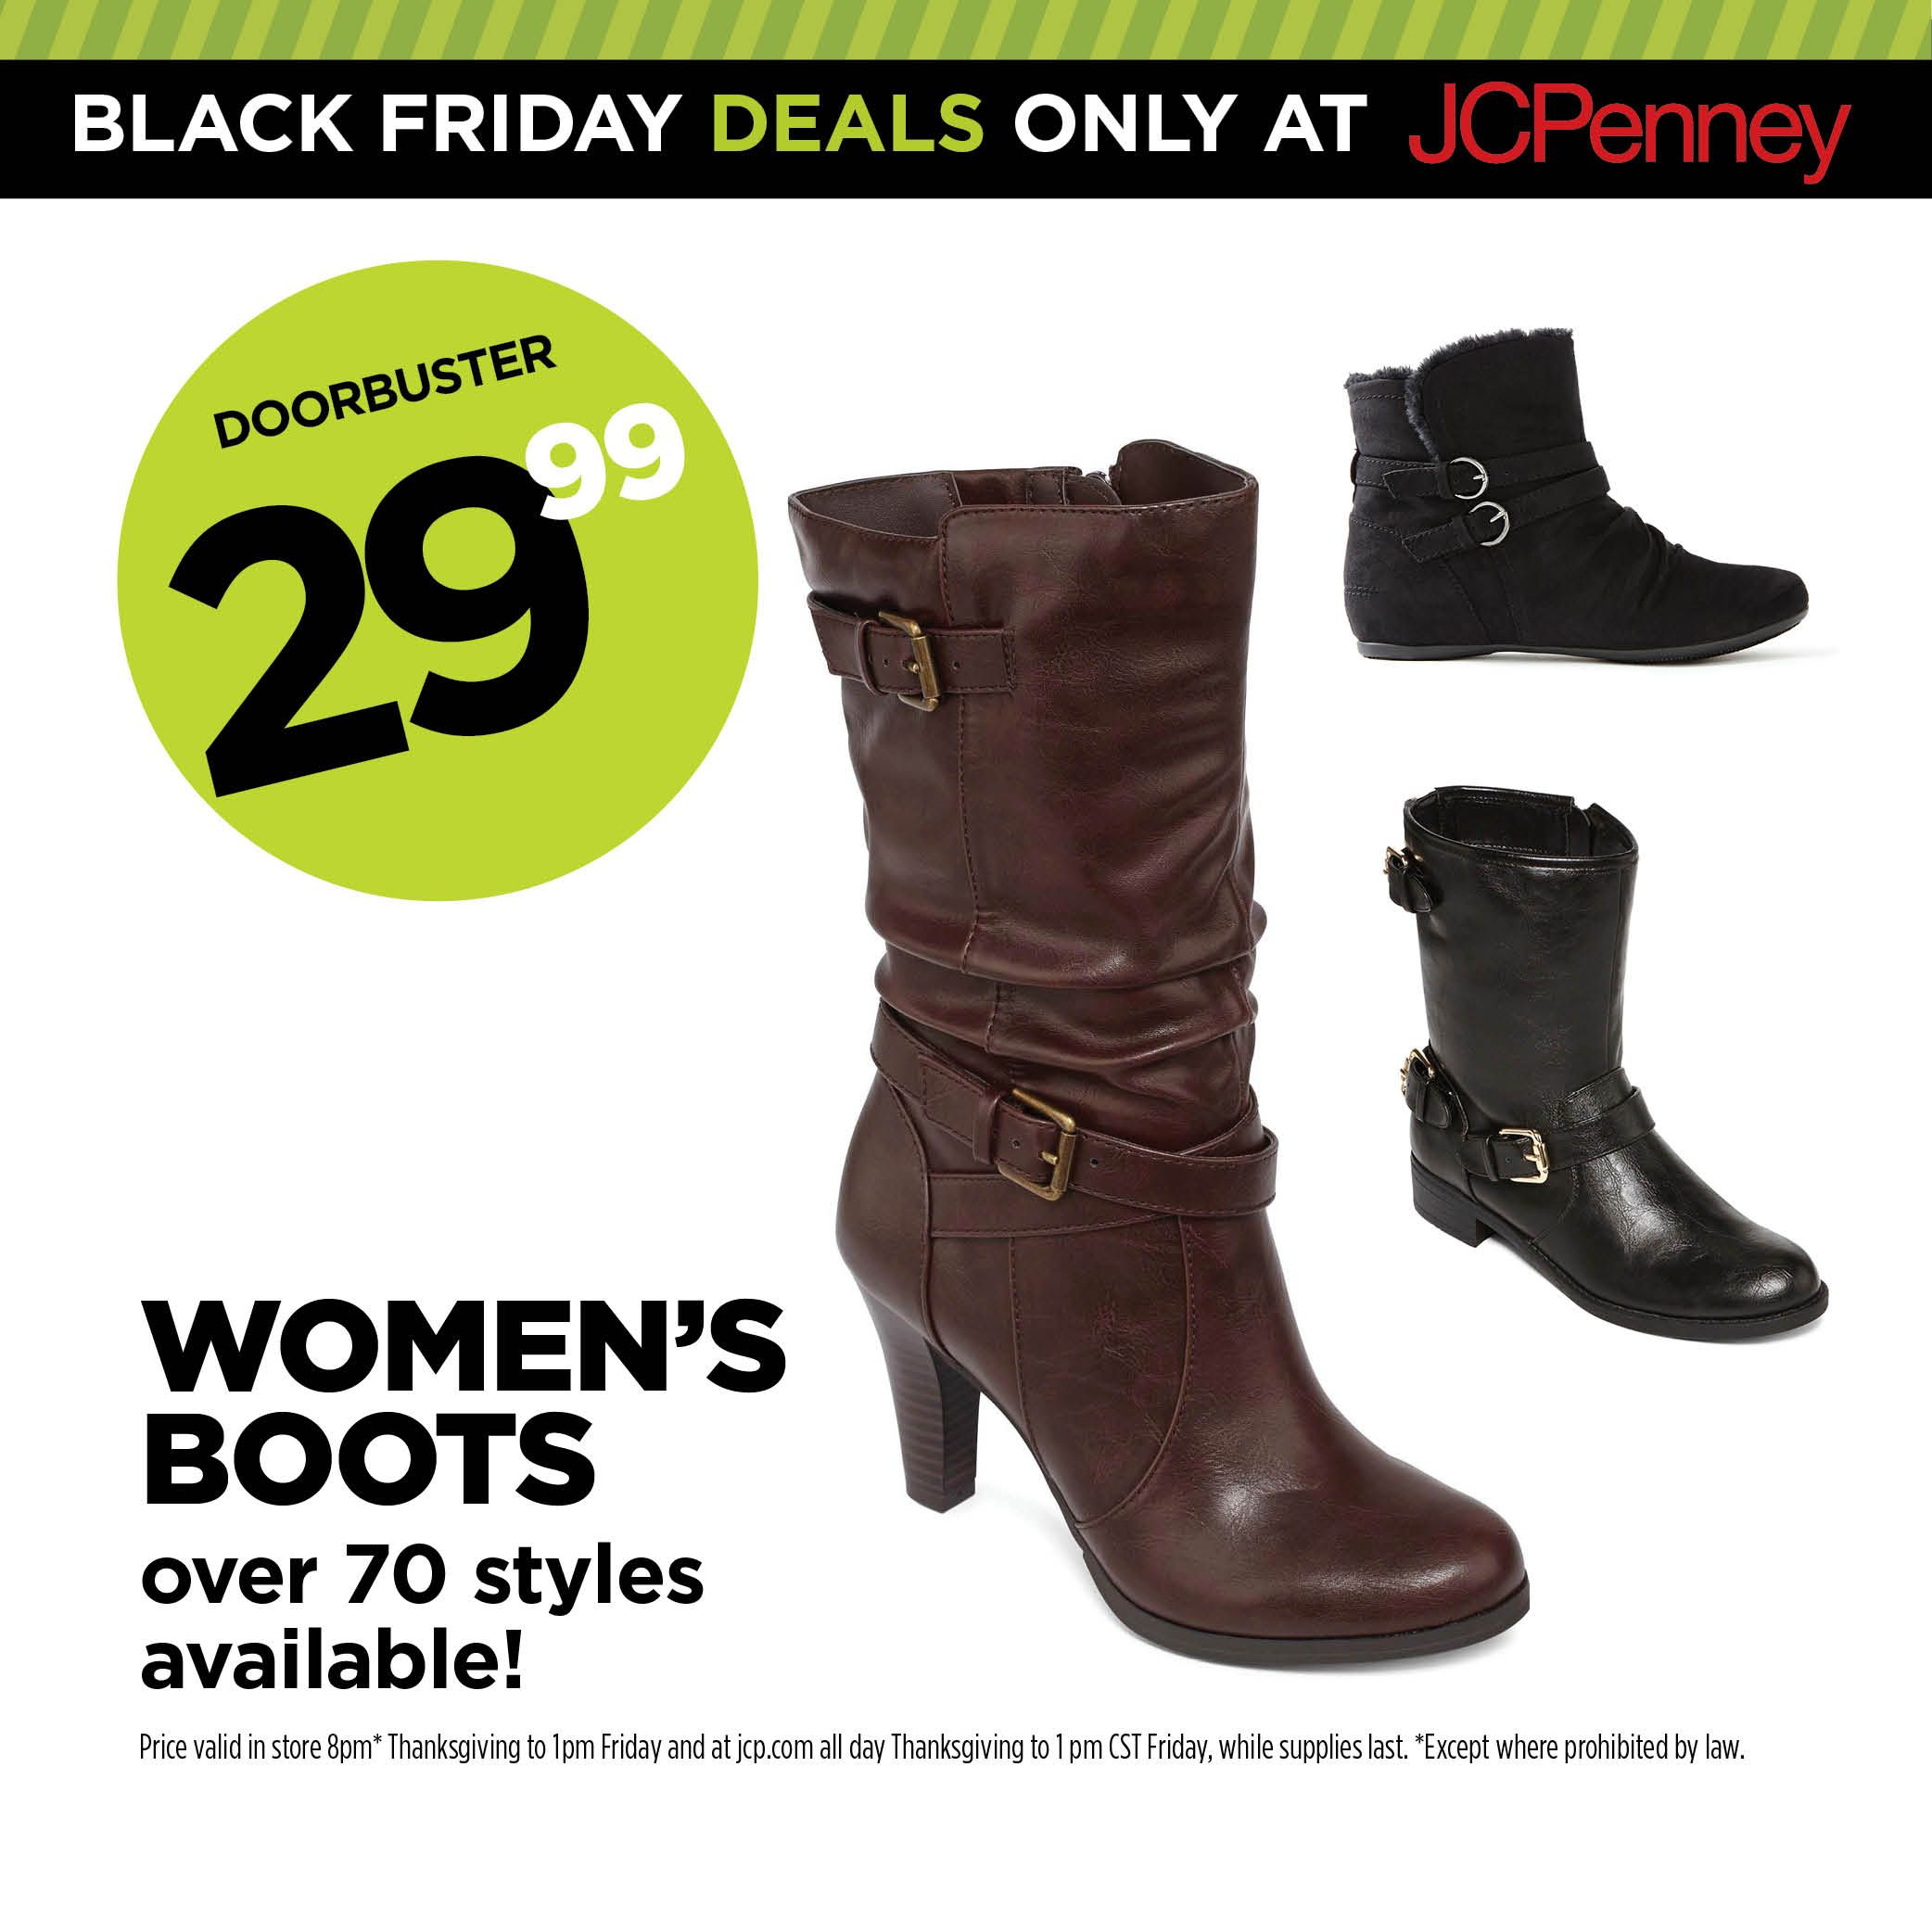 0dade8a7e38 JCPenney Black Friday Deal. Unwrap our biggest savings—like women's ...